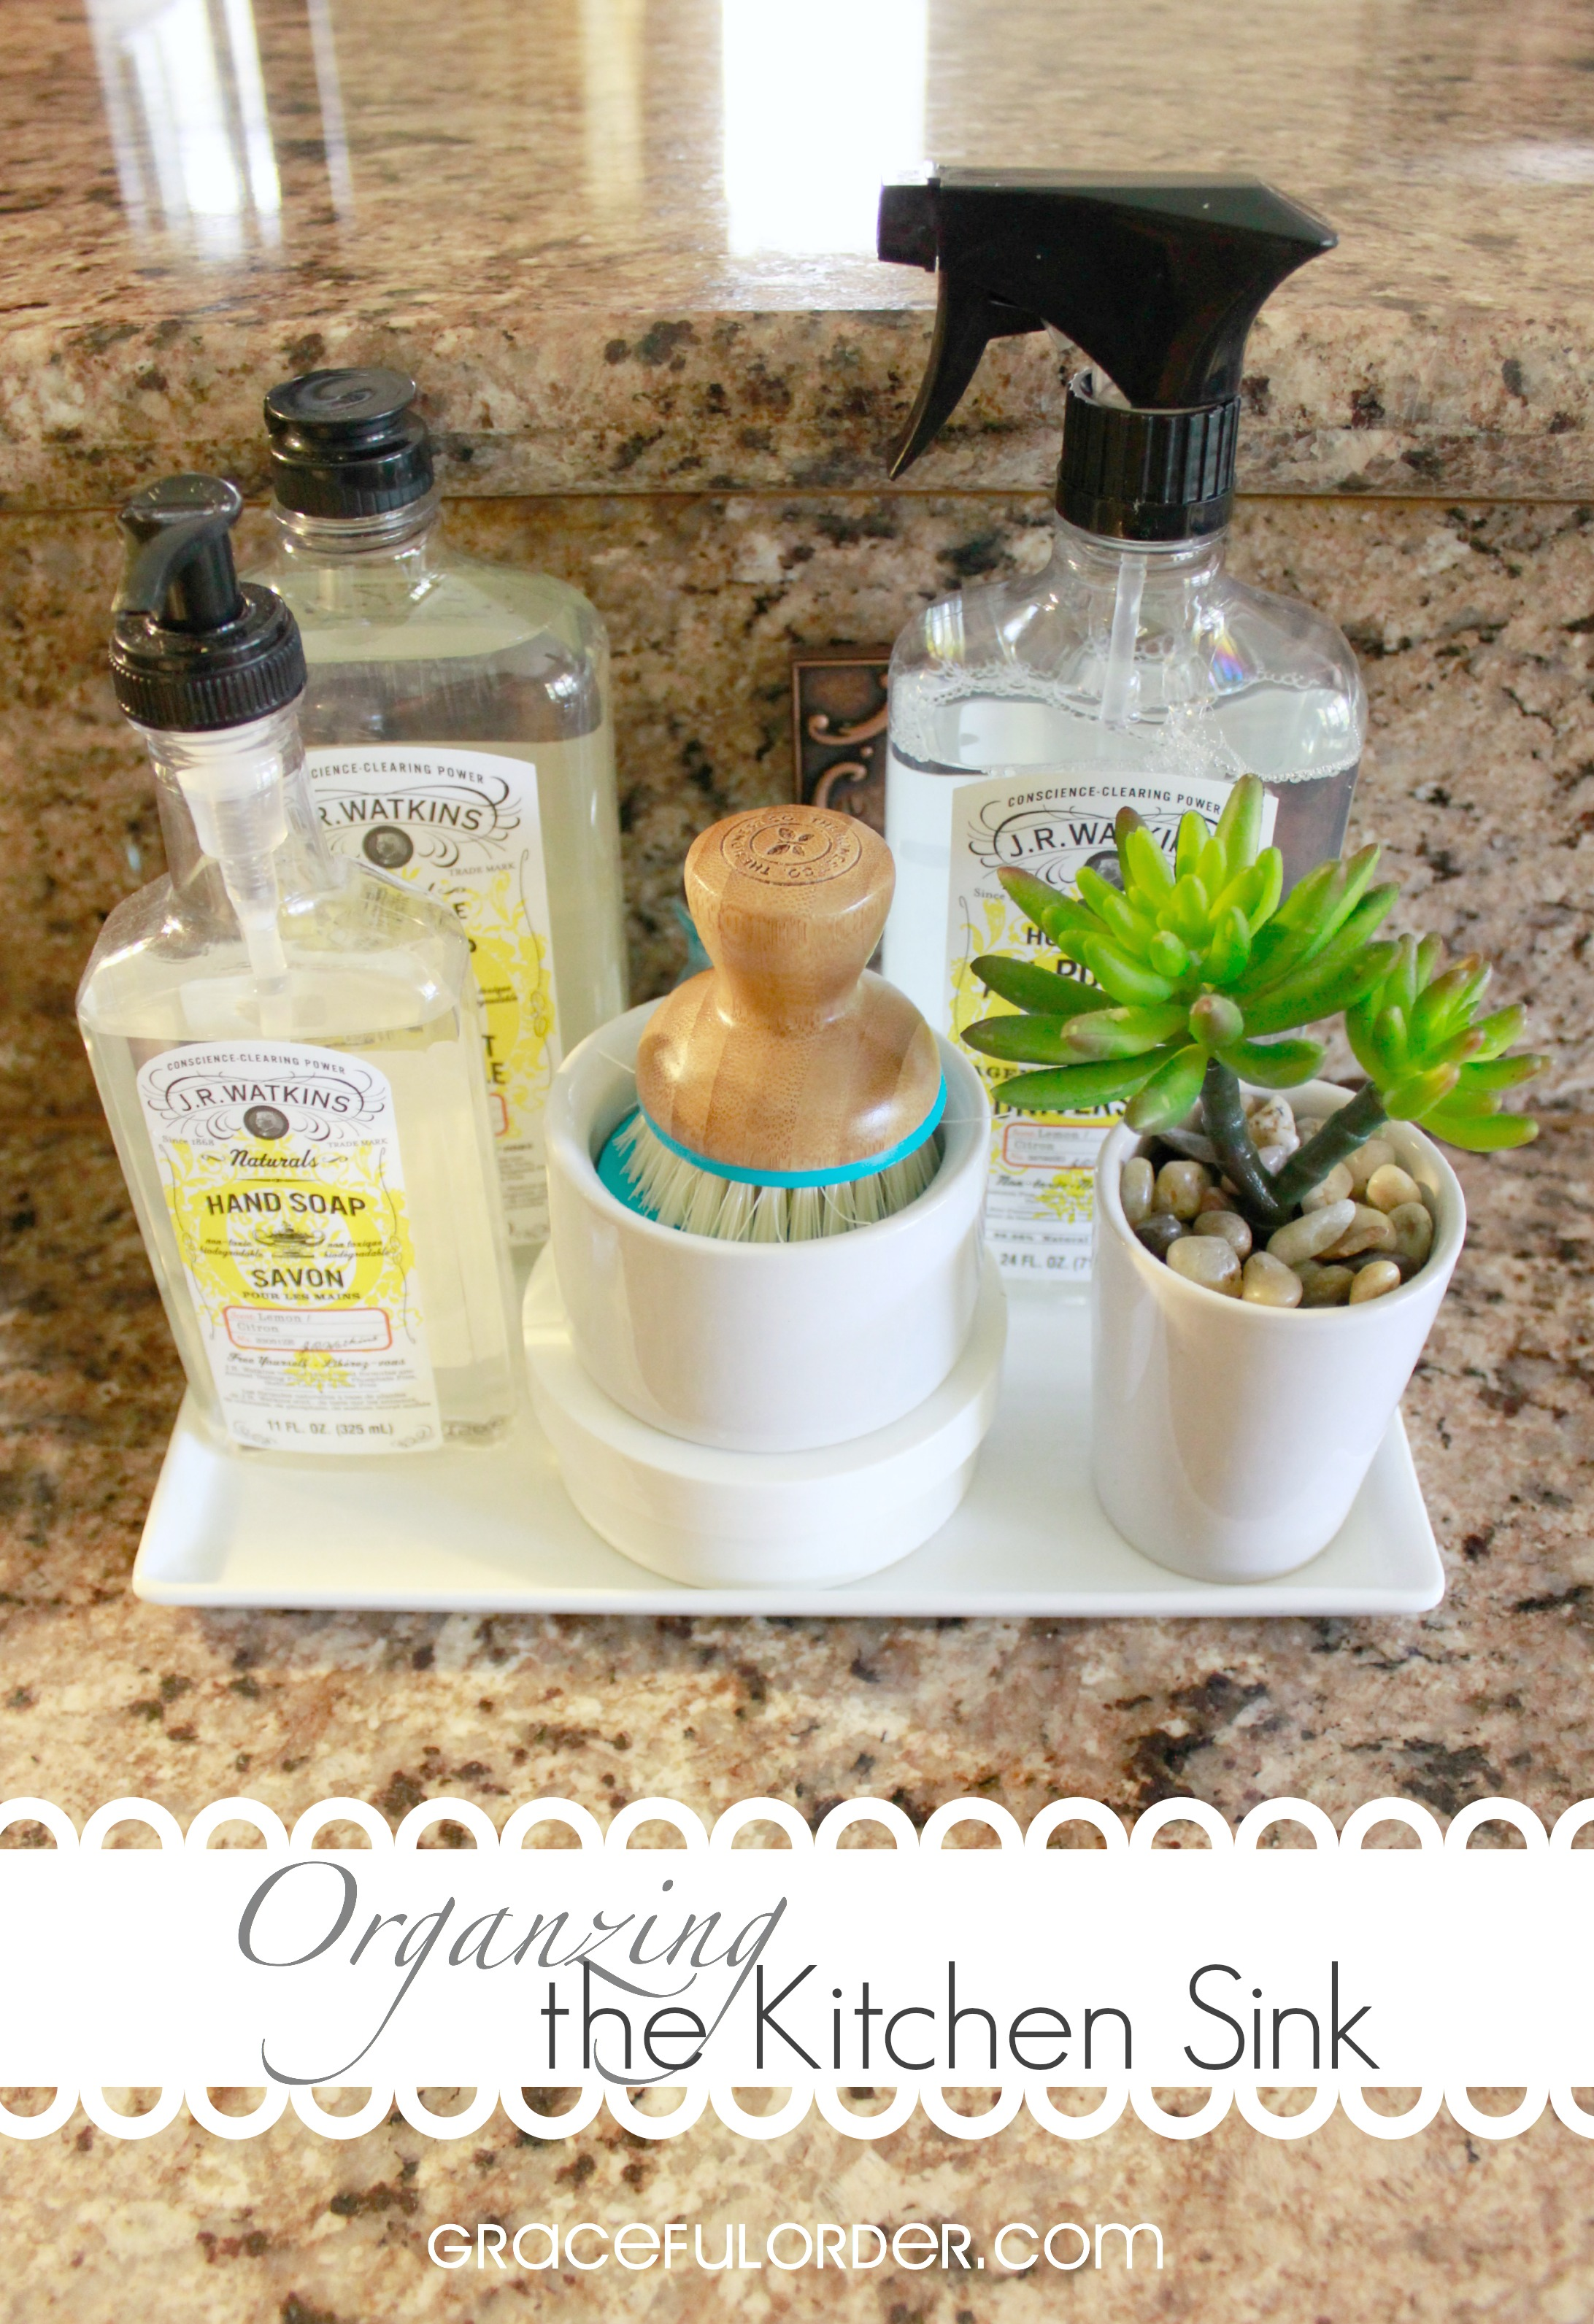 Organizing the Kitchen Sink Area - Graceful Order